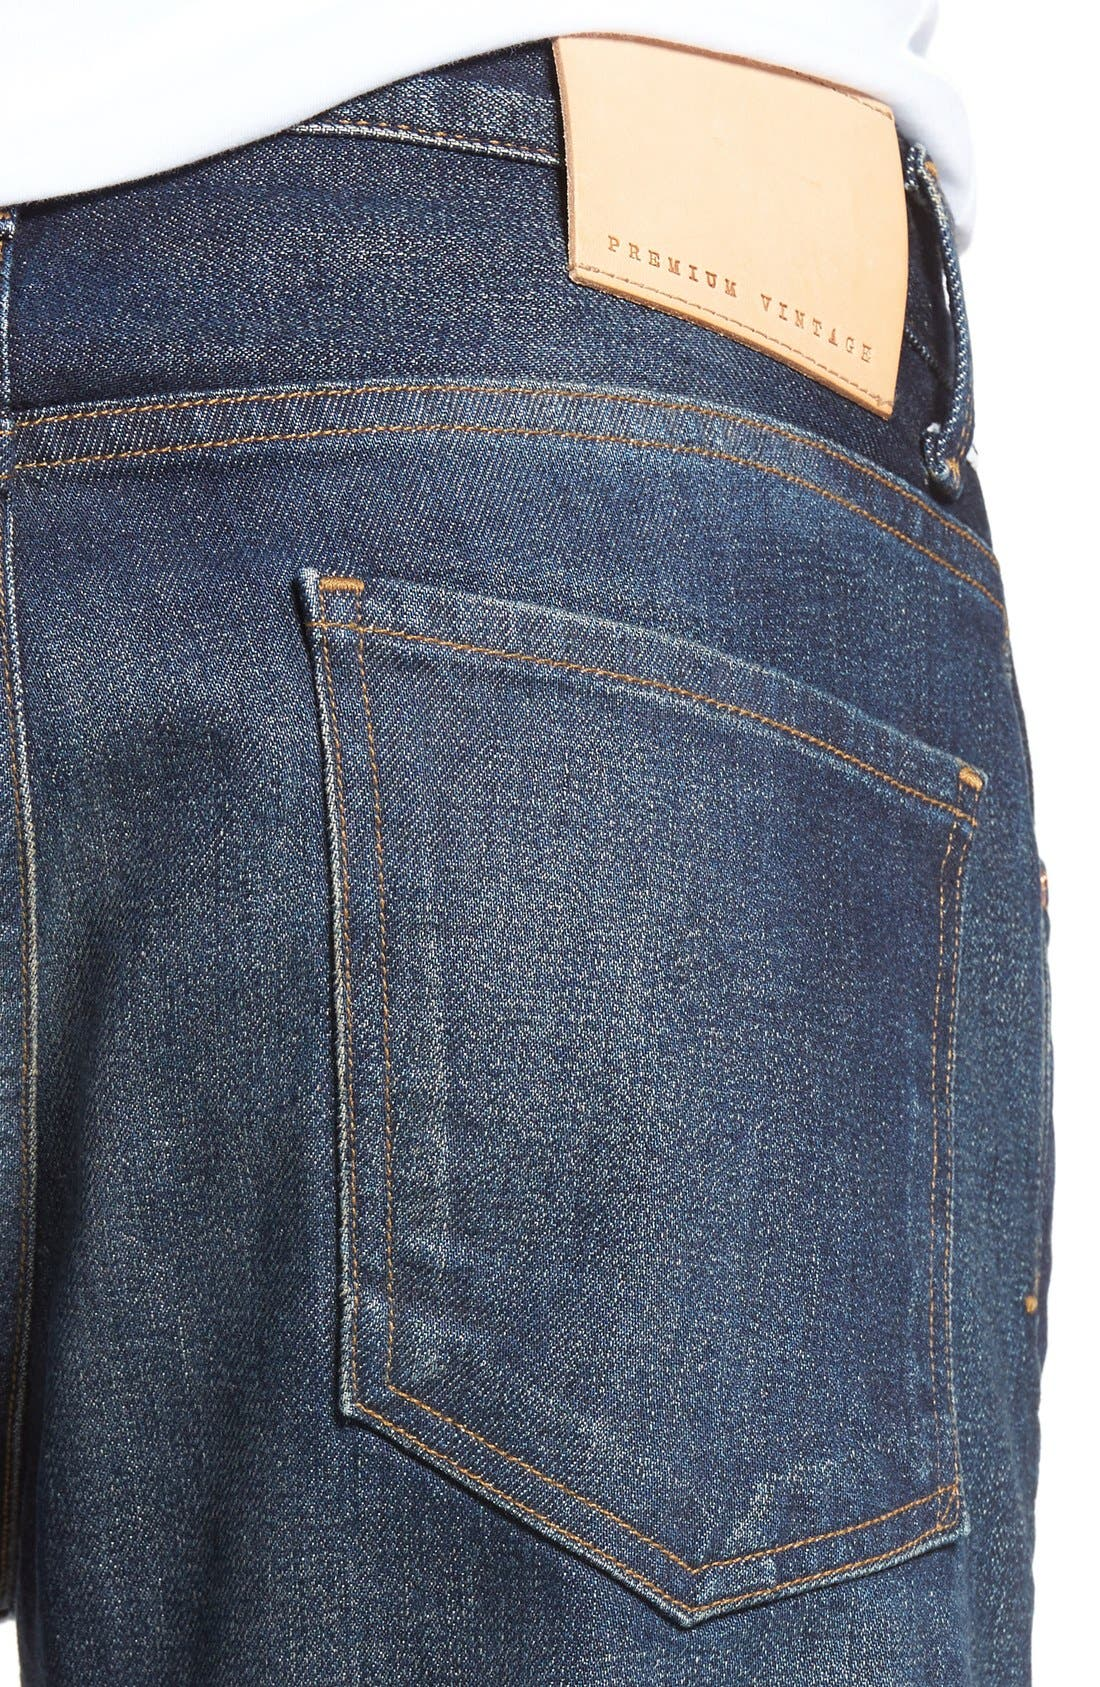 Bowery Slim Fit Jeans,                             Alternate thumbnail 4, color,                             Hesperia